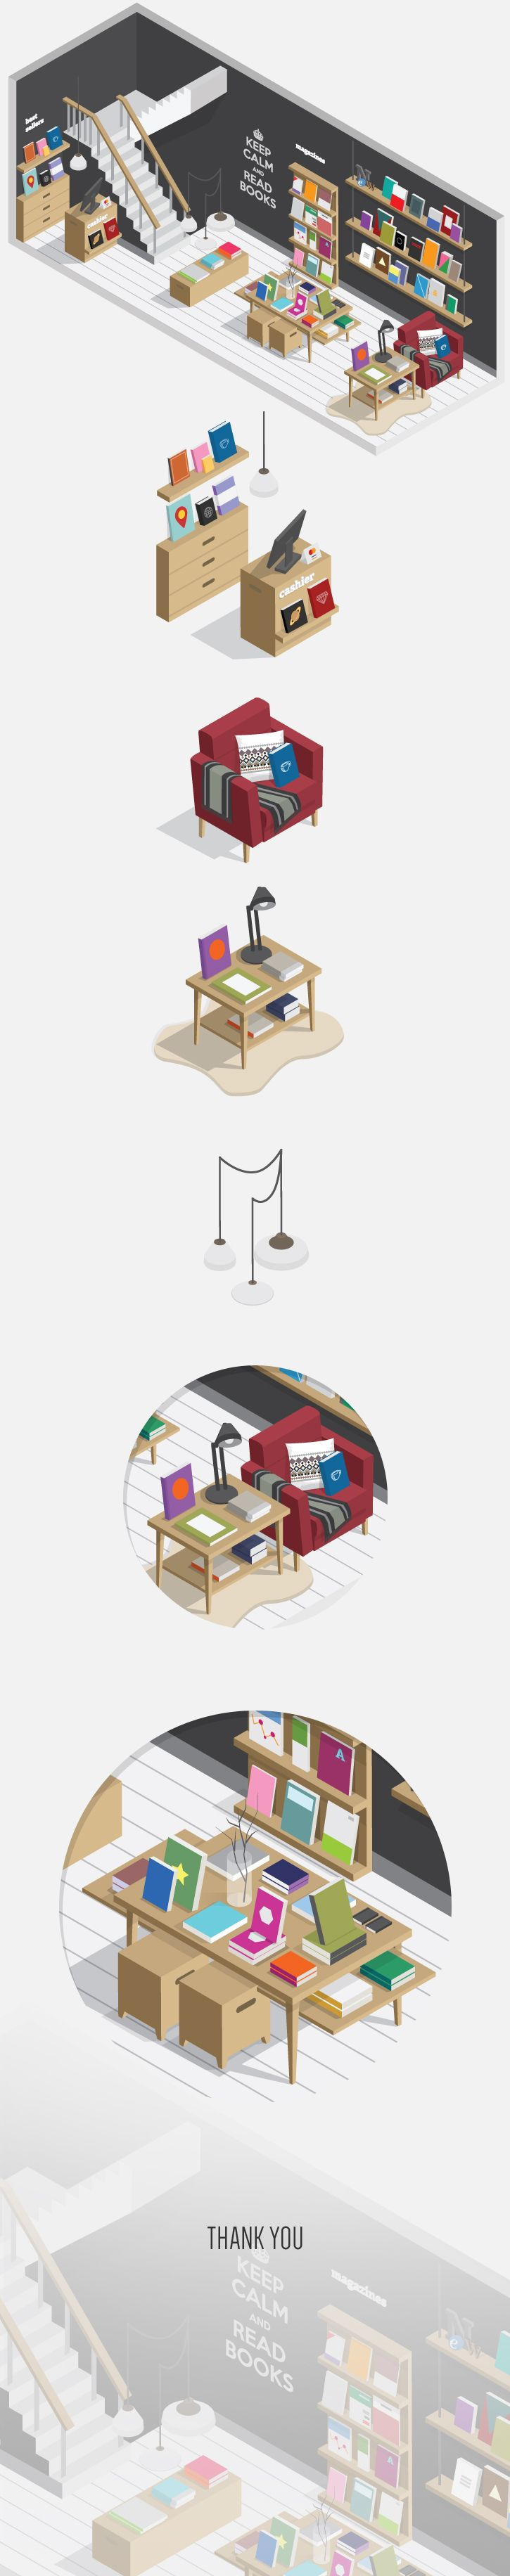 Bookstore, from Mario from Indonesia, on Behance.